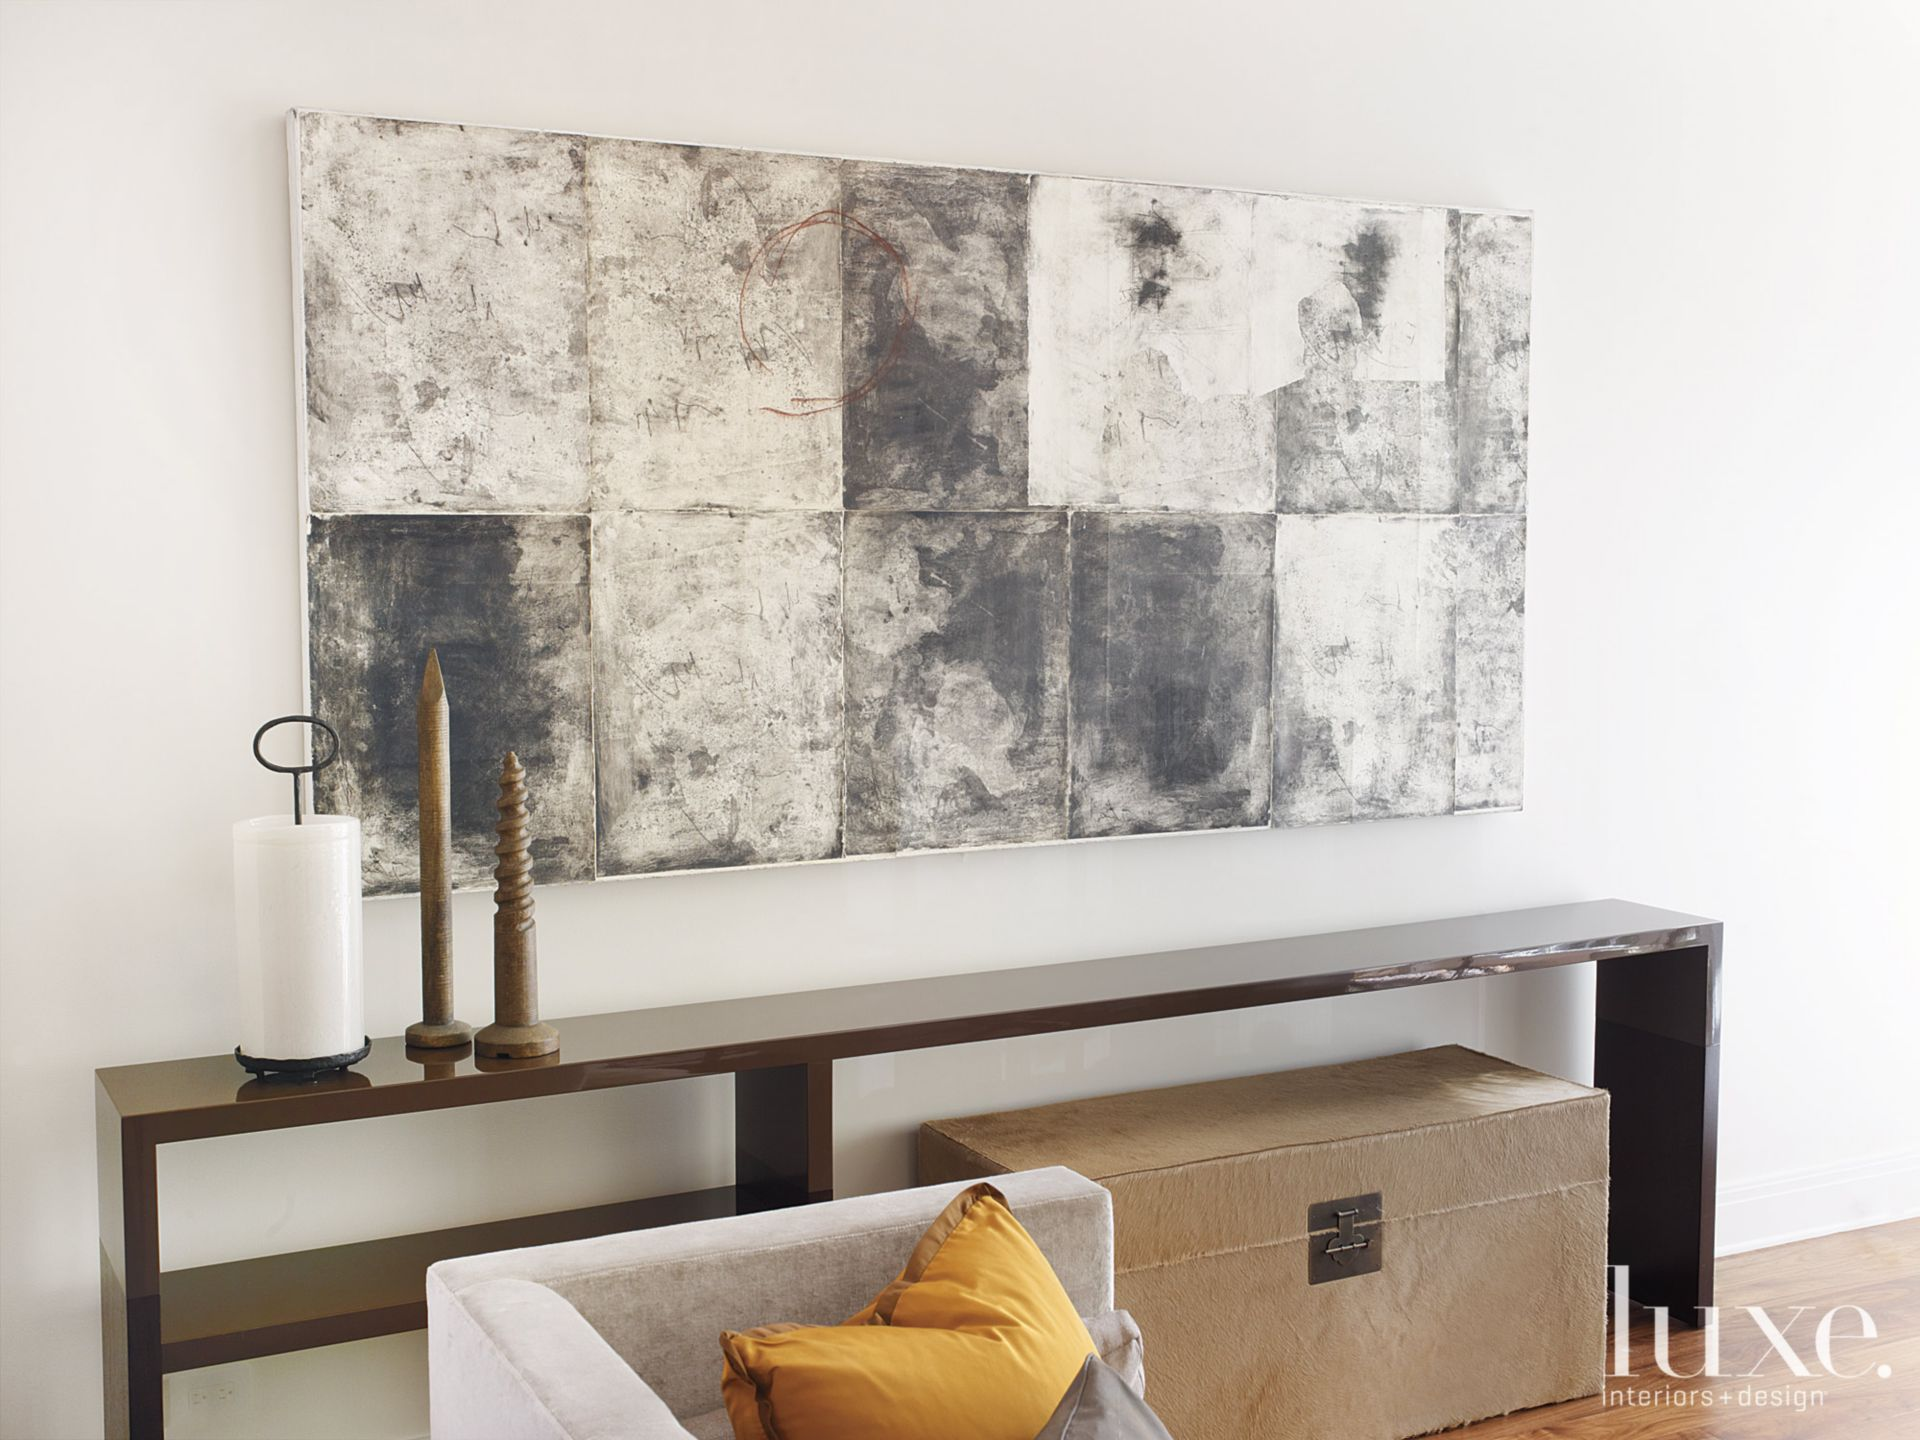 Contemporary White Living Room Vignette with Long Console